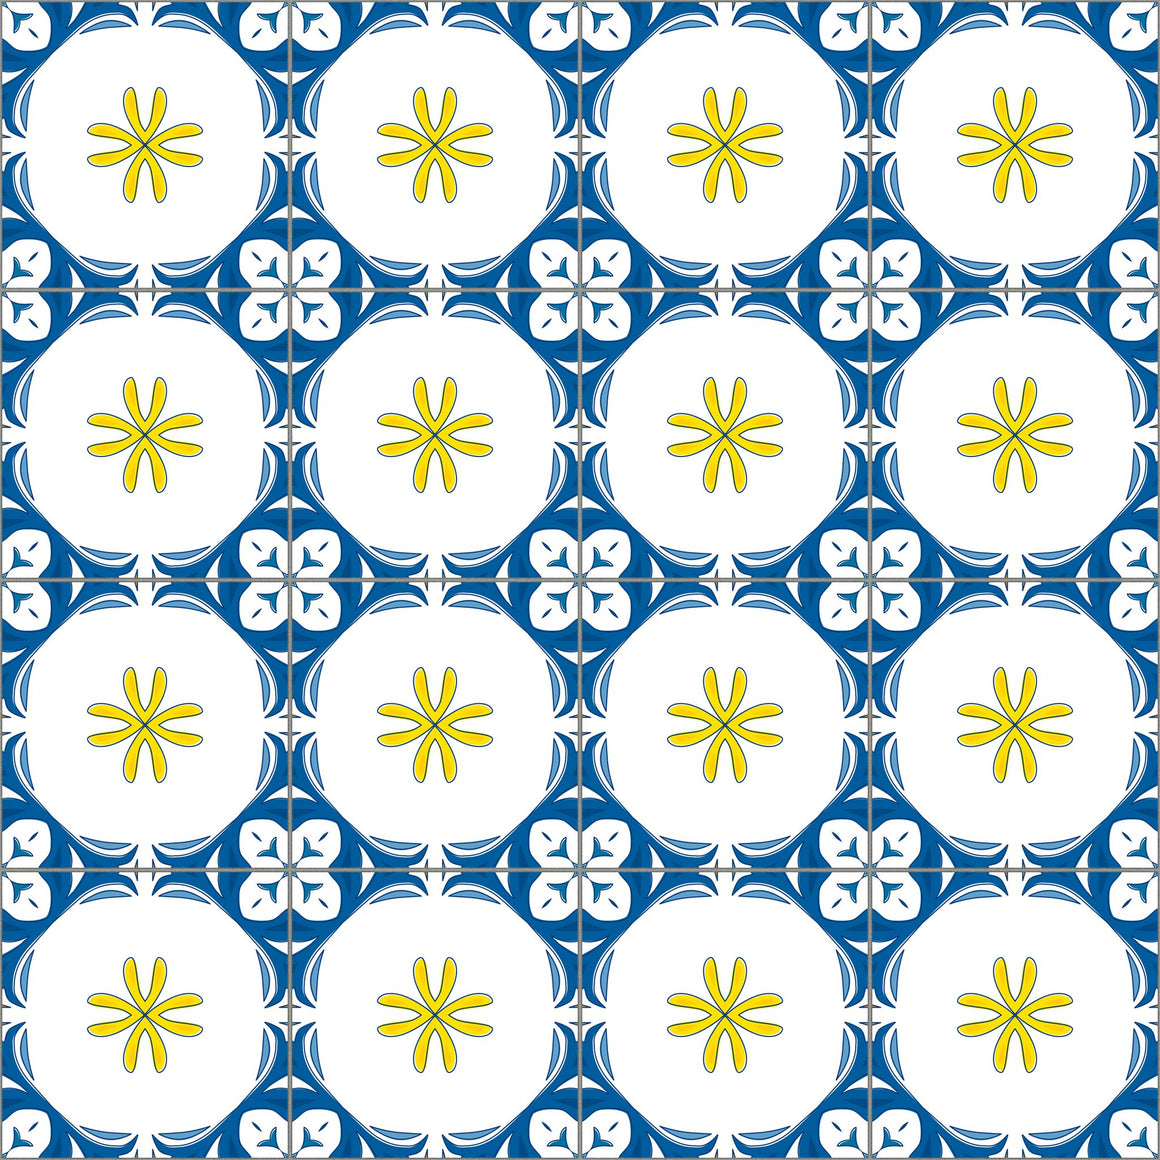 Tile stickers - KP075